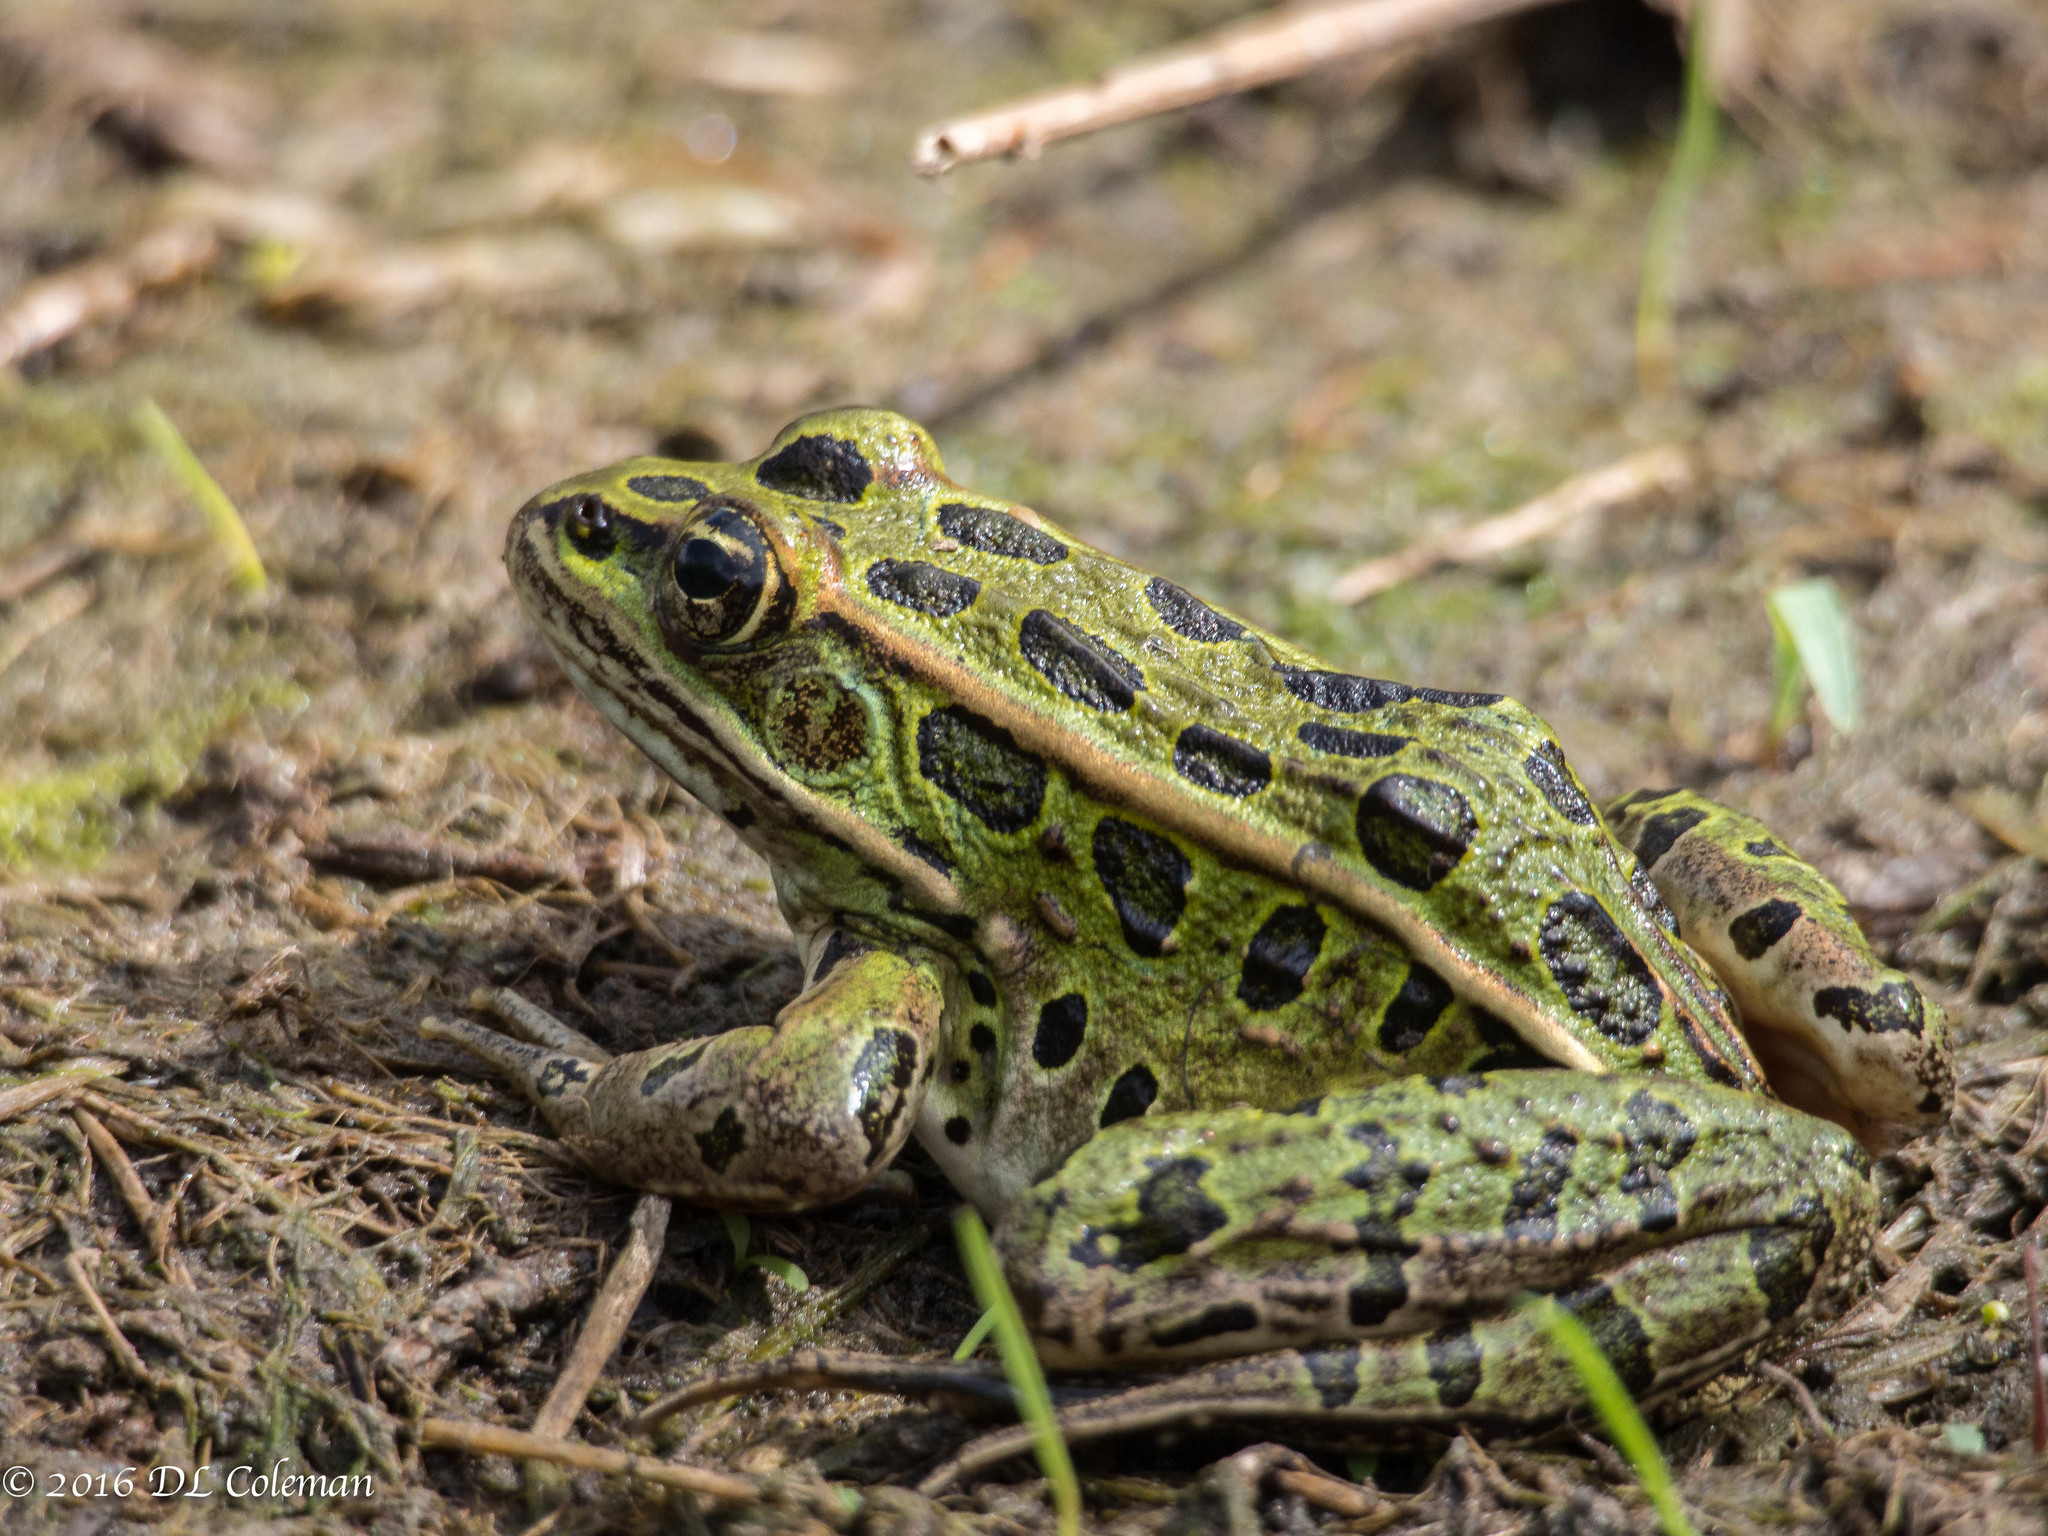 leopard frogs unlike their distant cousins prefer denser terrestrial vegetation Whiteshell provincial park is a 2,721 km 2 who was sitting in the distant right-hand corner of the their diet consists of terrestrial and aquatic vegetation.